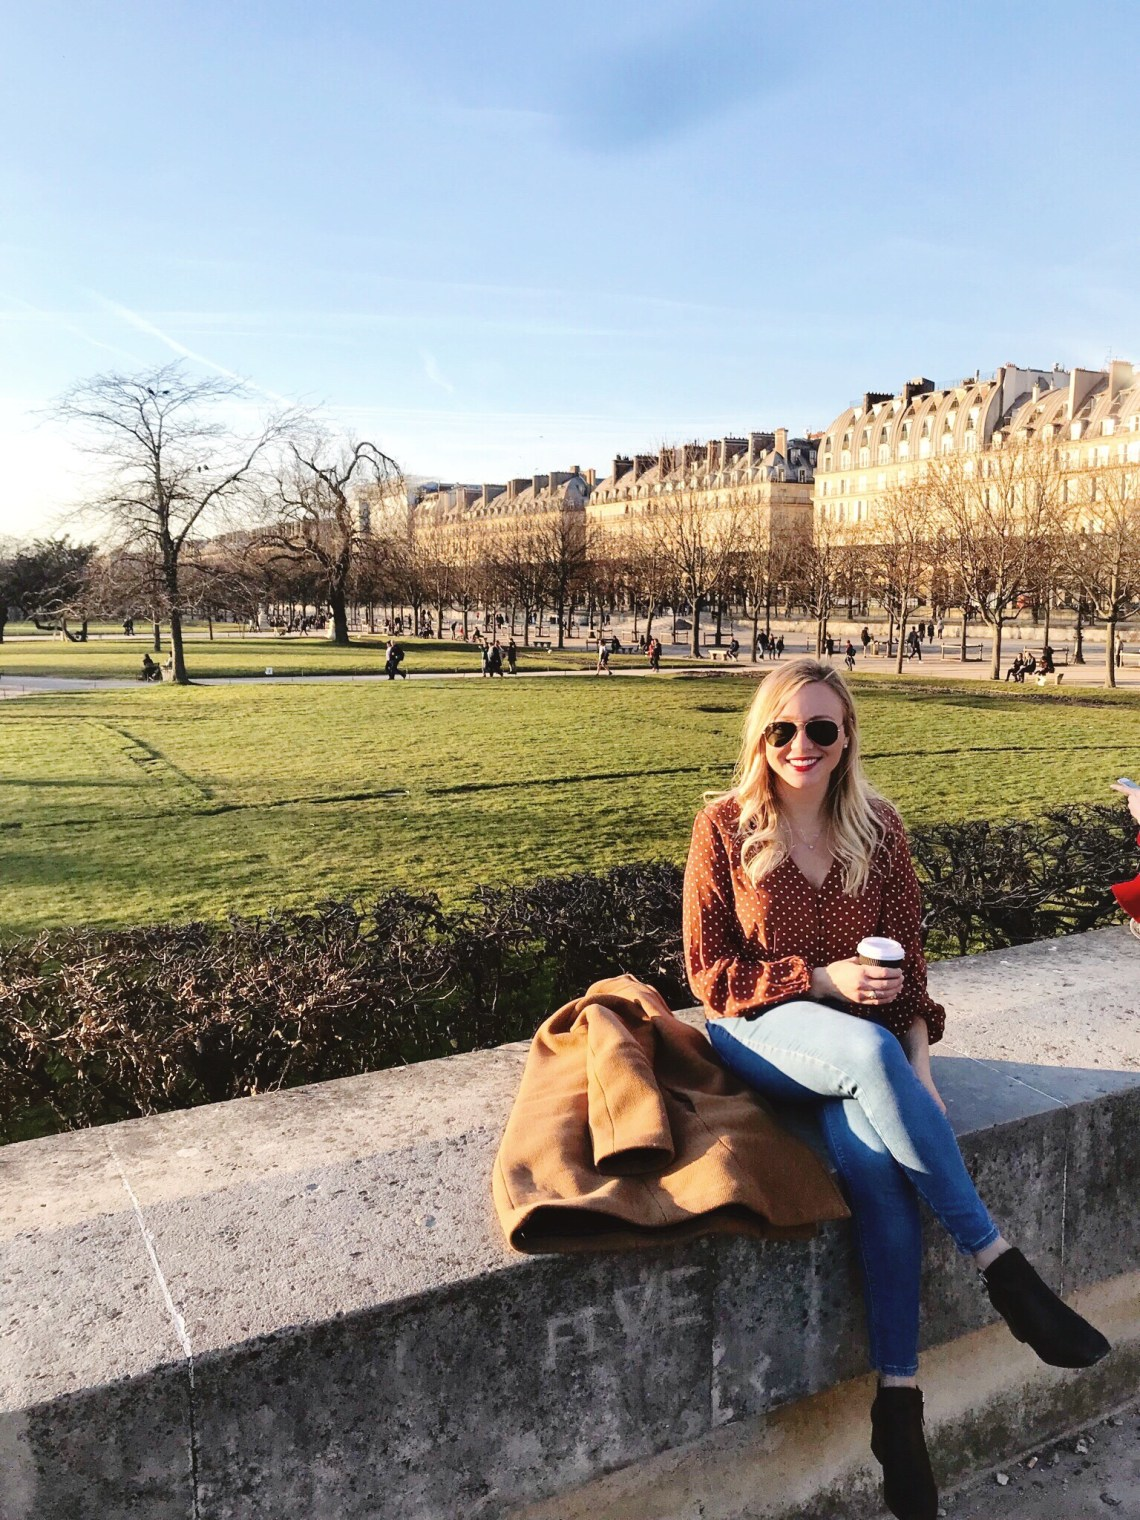 Tuileries Garden Paris France in February